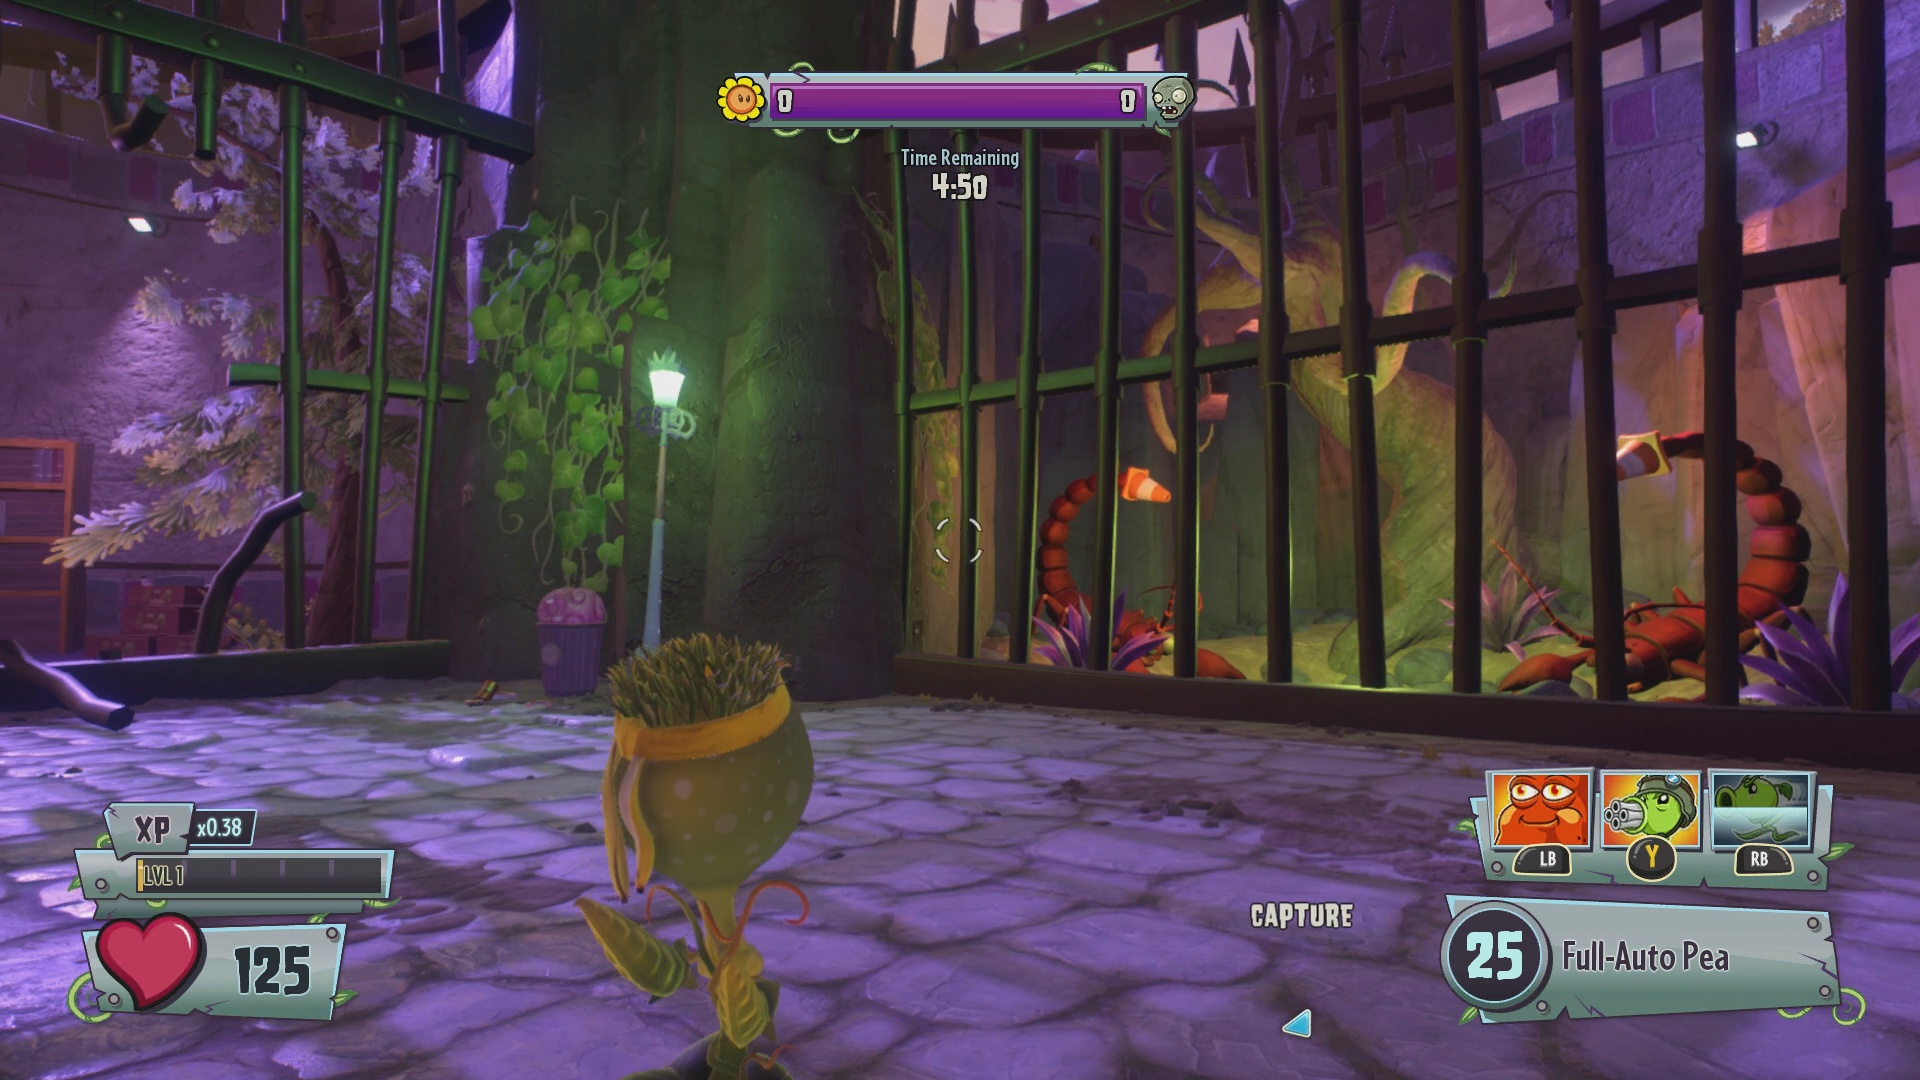 Plants vs Zombies Garden Warfare 2 - Golden Gnome